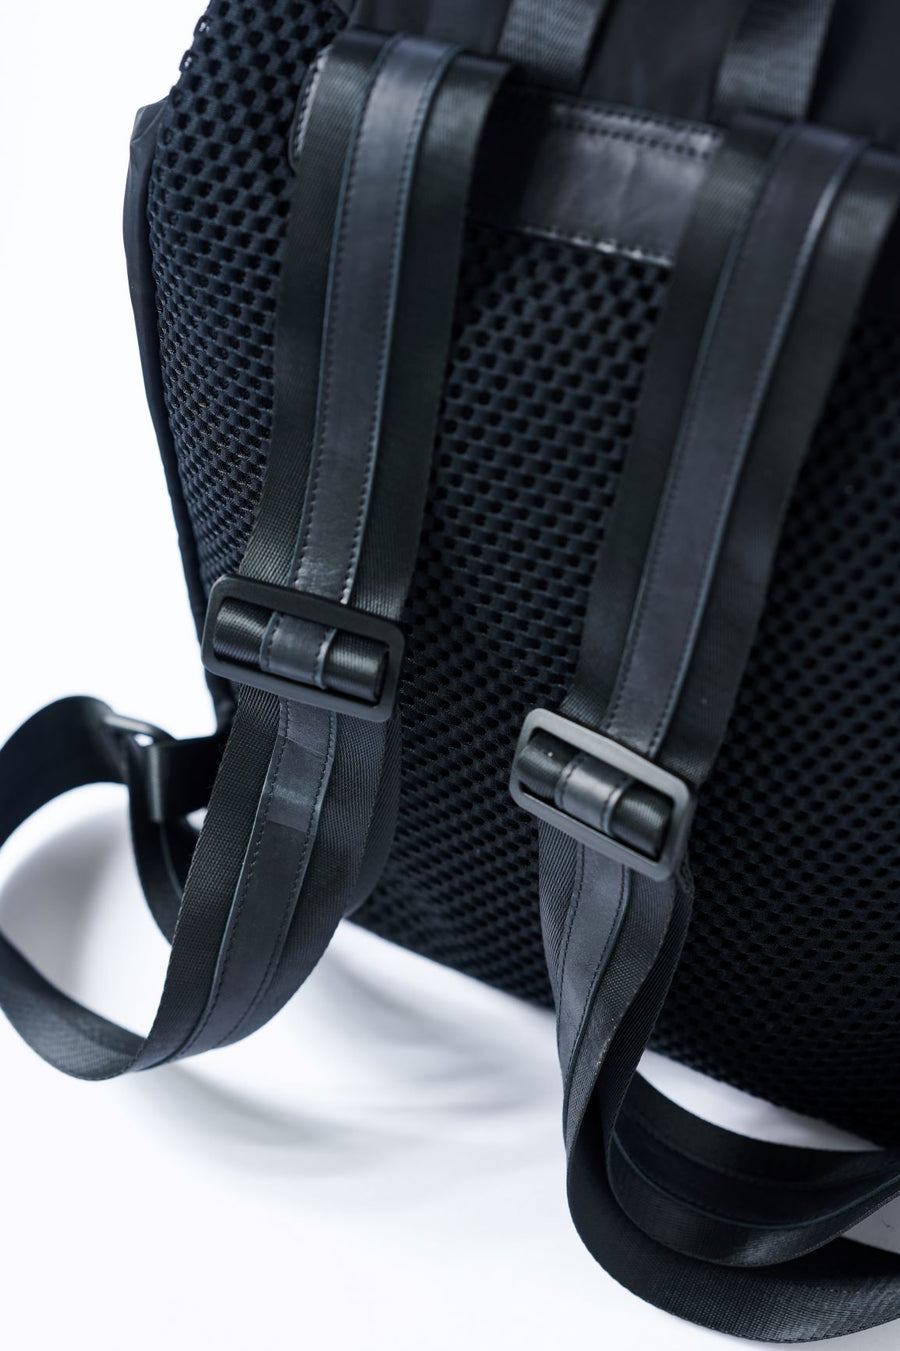 Padded mesh back on the Anya & Niki Delray Backpack - a black nylon backpack with glossy black lining.